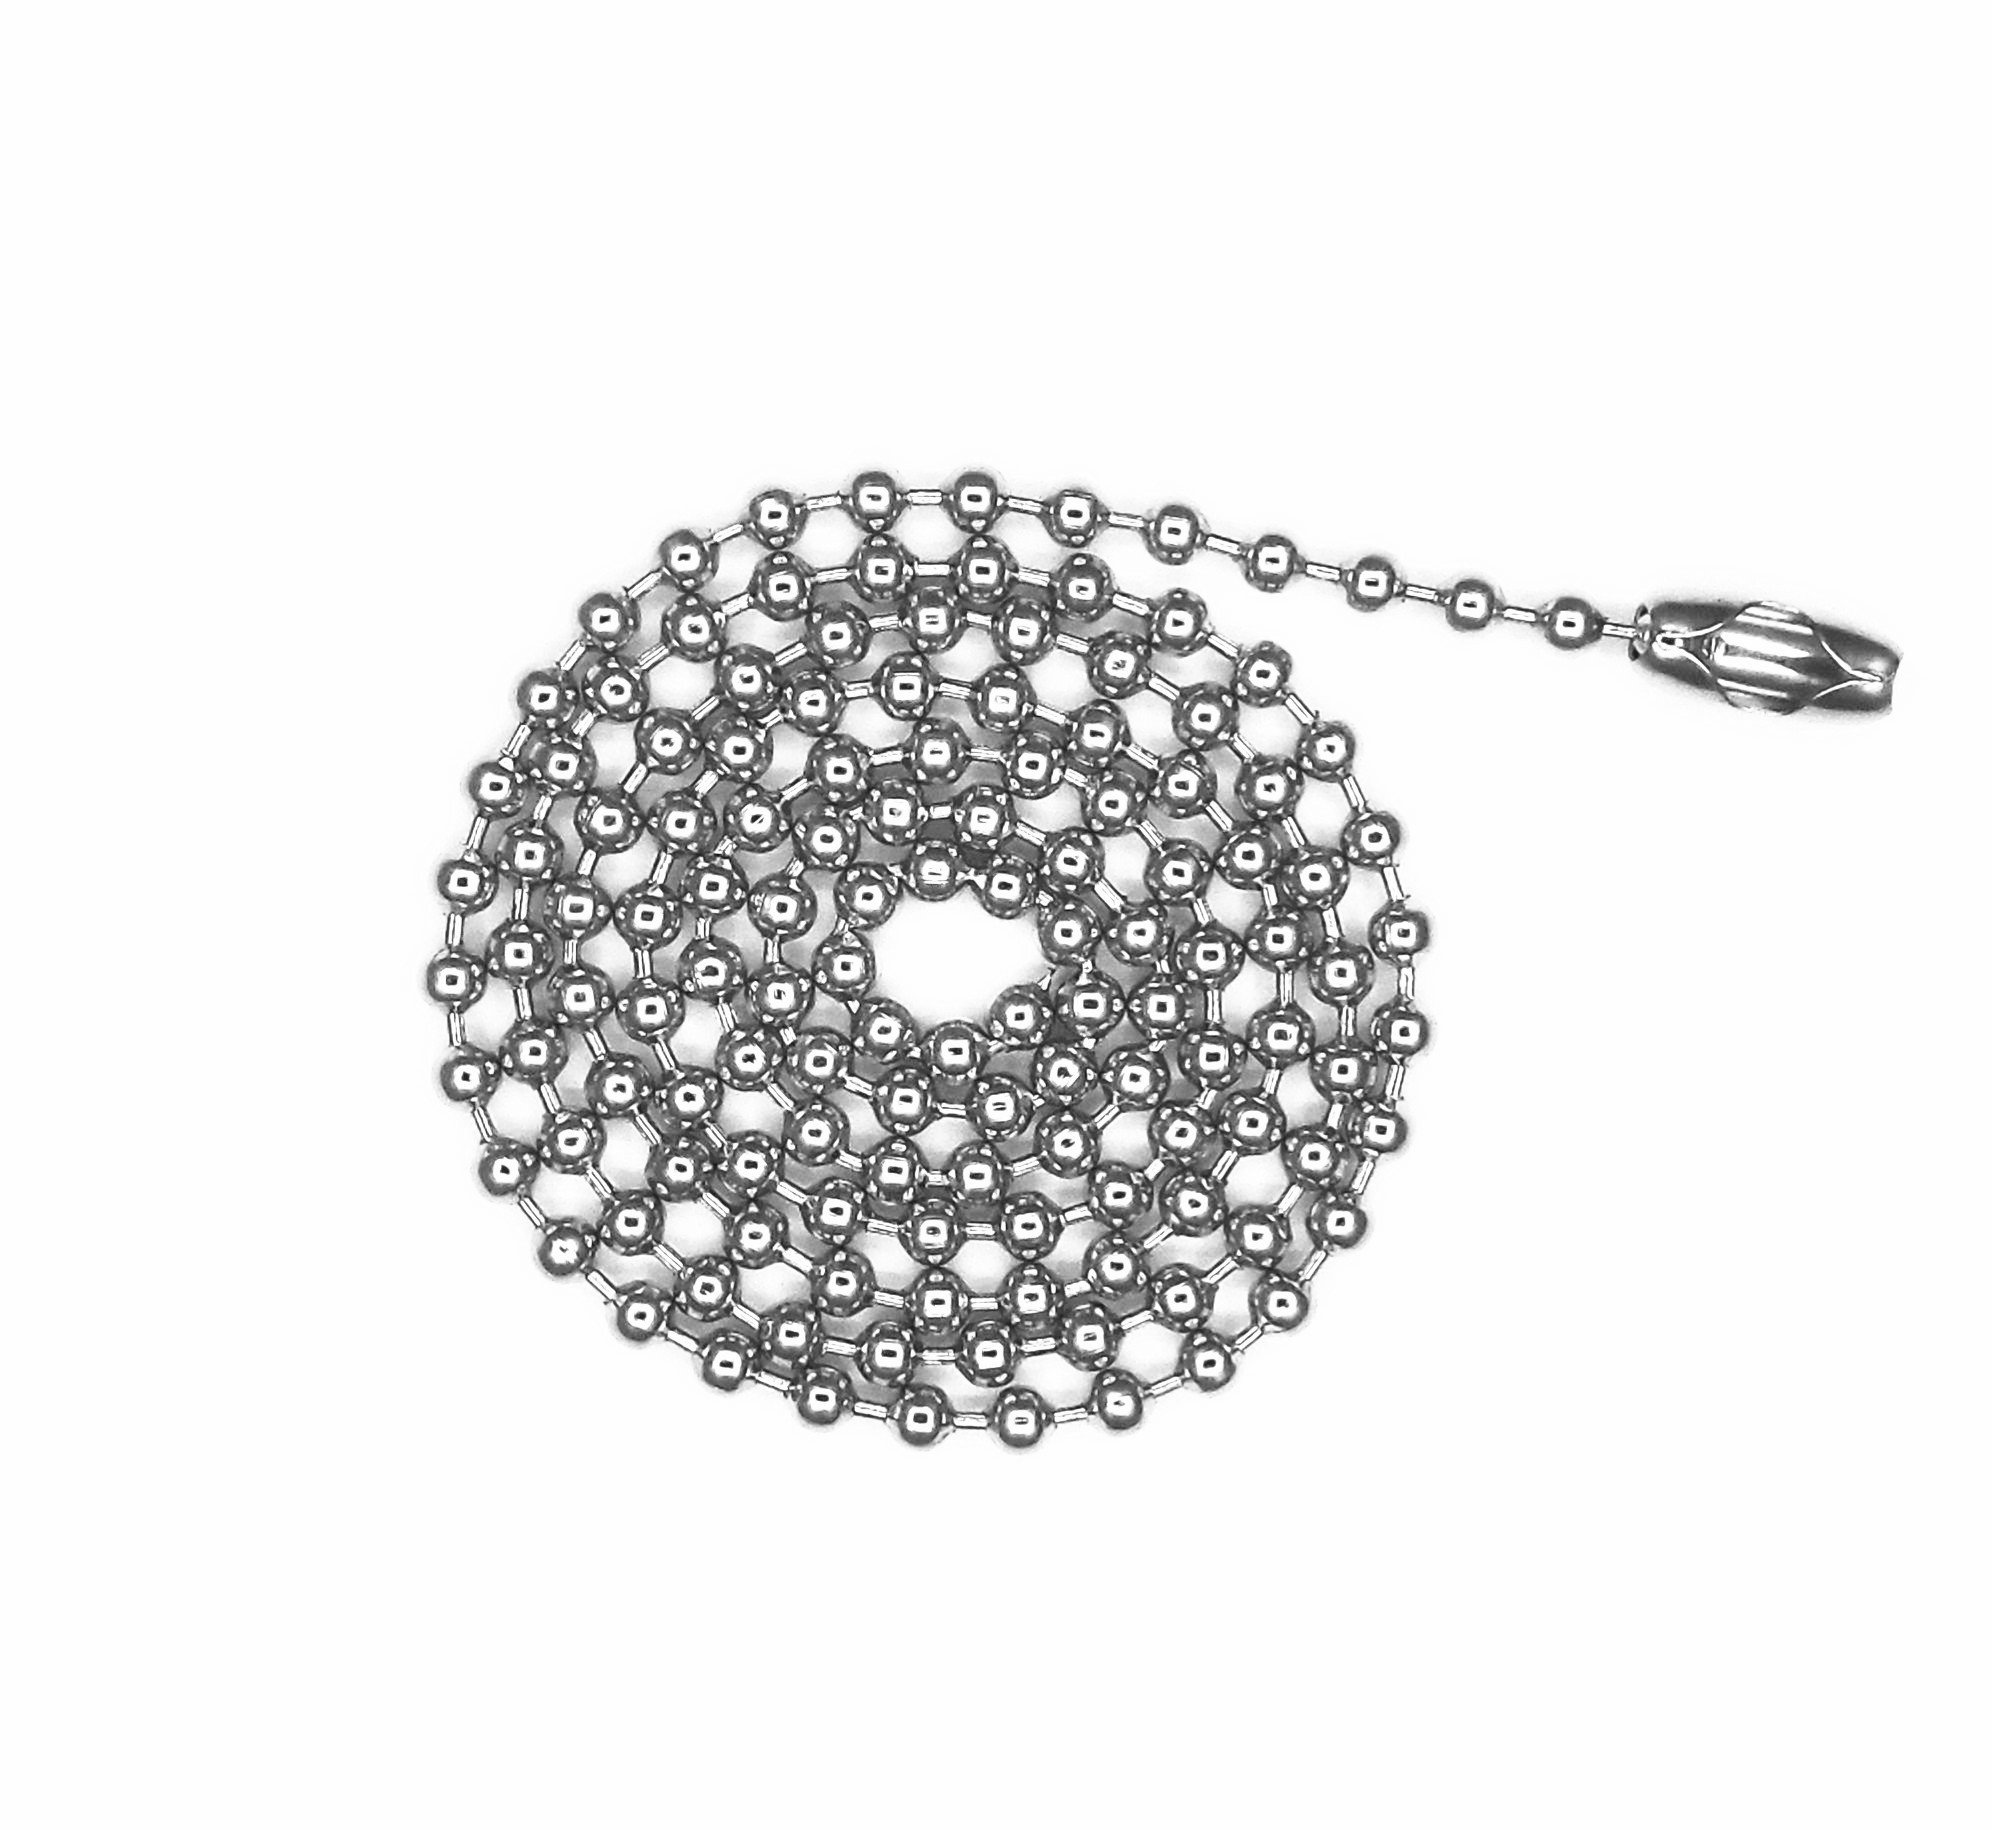 Glory Qin Stainless Steel Ball Chains & 25 Matching connectors (#8, 20 Feet)